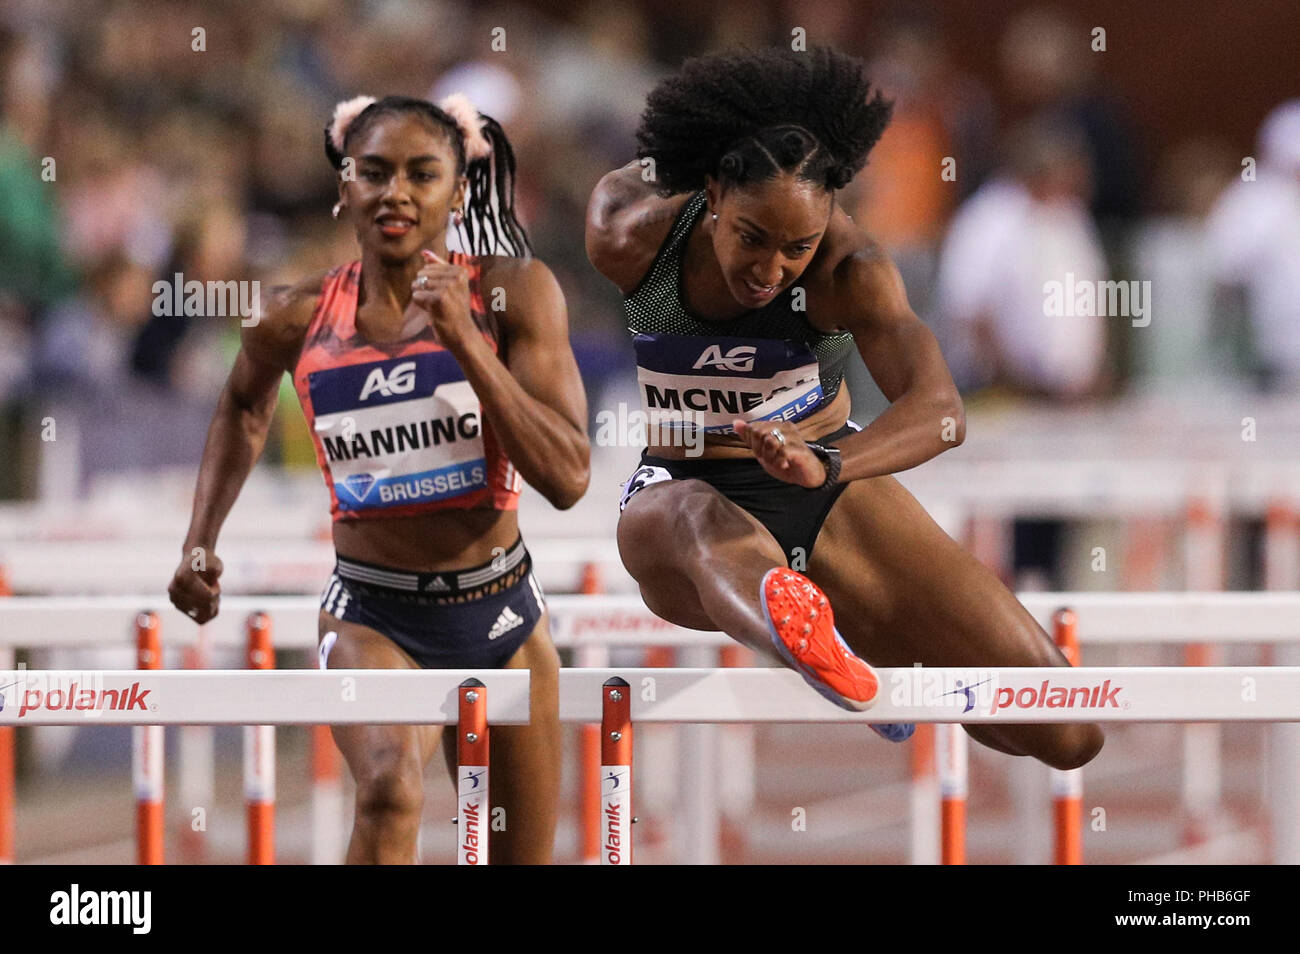 Brussels, Belgium. 31st Aug, 2018. Brianna McNeal (Front) of the United States competes during the women's 100m hurdles at the IAAF Diamond League athletics meeting in Brussels, Belgium, Aug. 31, 2018. Brianna McNeal claimed the title in a time of 12.61 seconds. Credit: Zheng Huansong/Xinhua/Alamy Live News - Stock Image